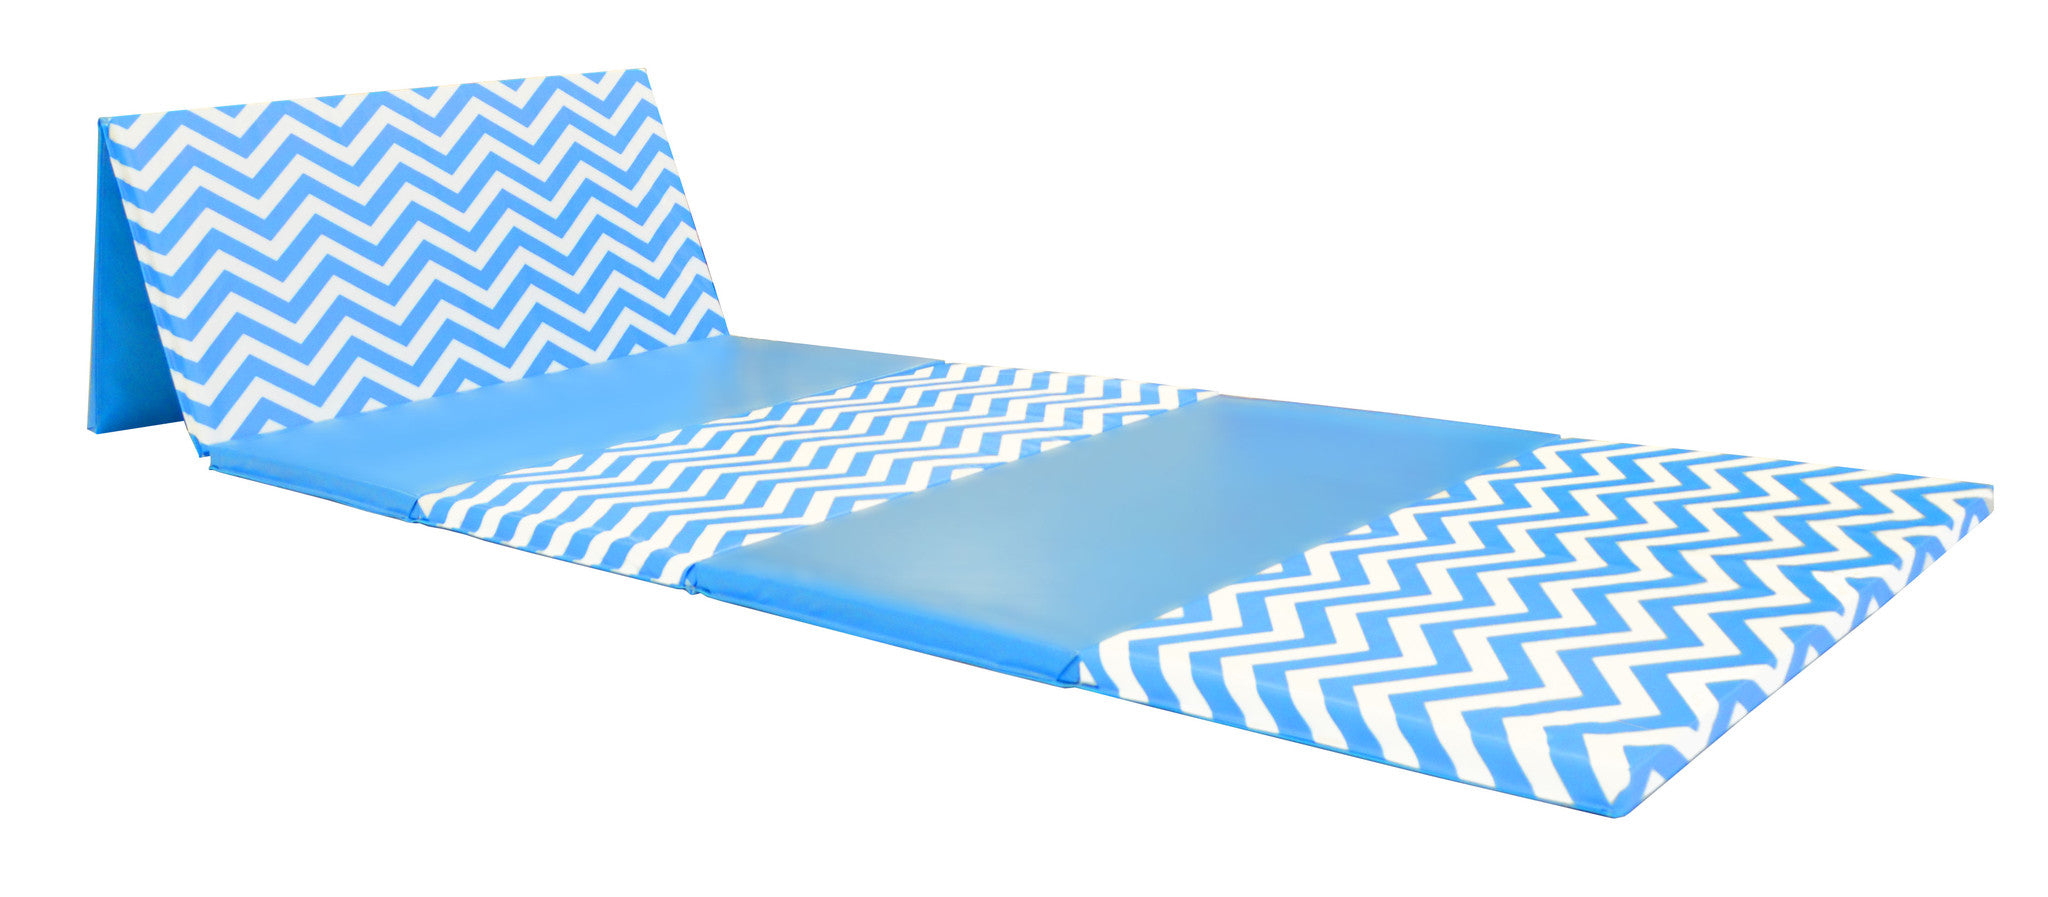 "Chevron Zigzag 4' x 12' x 1 3/8"" Advanced Level Folding Gymnastics Mat"